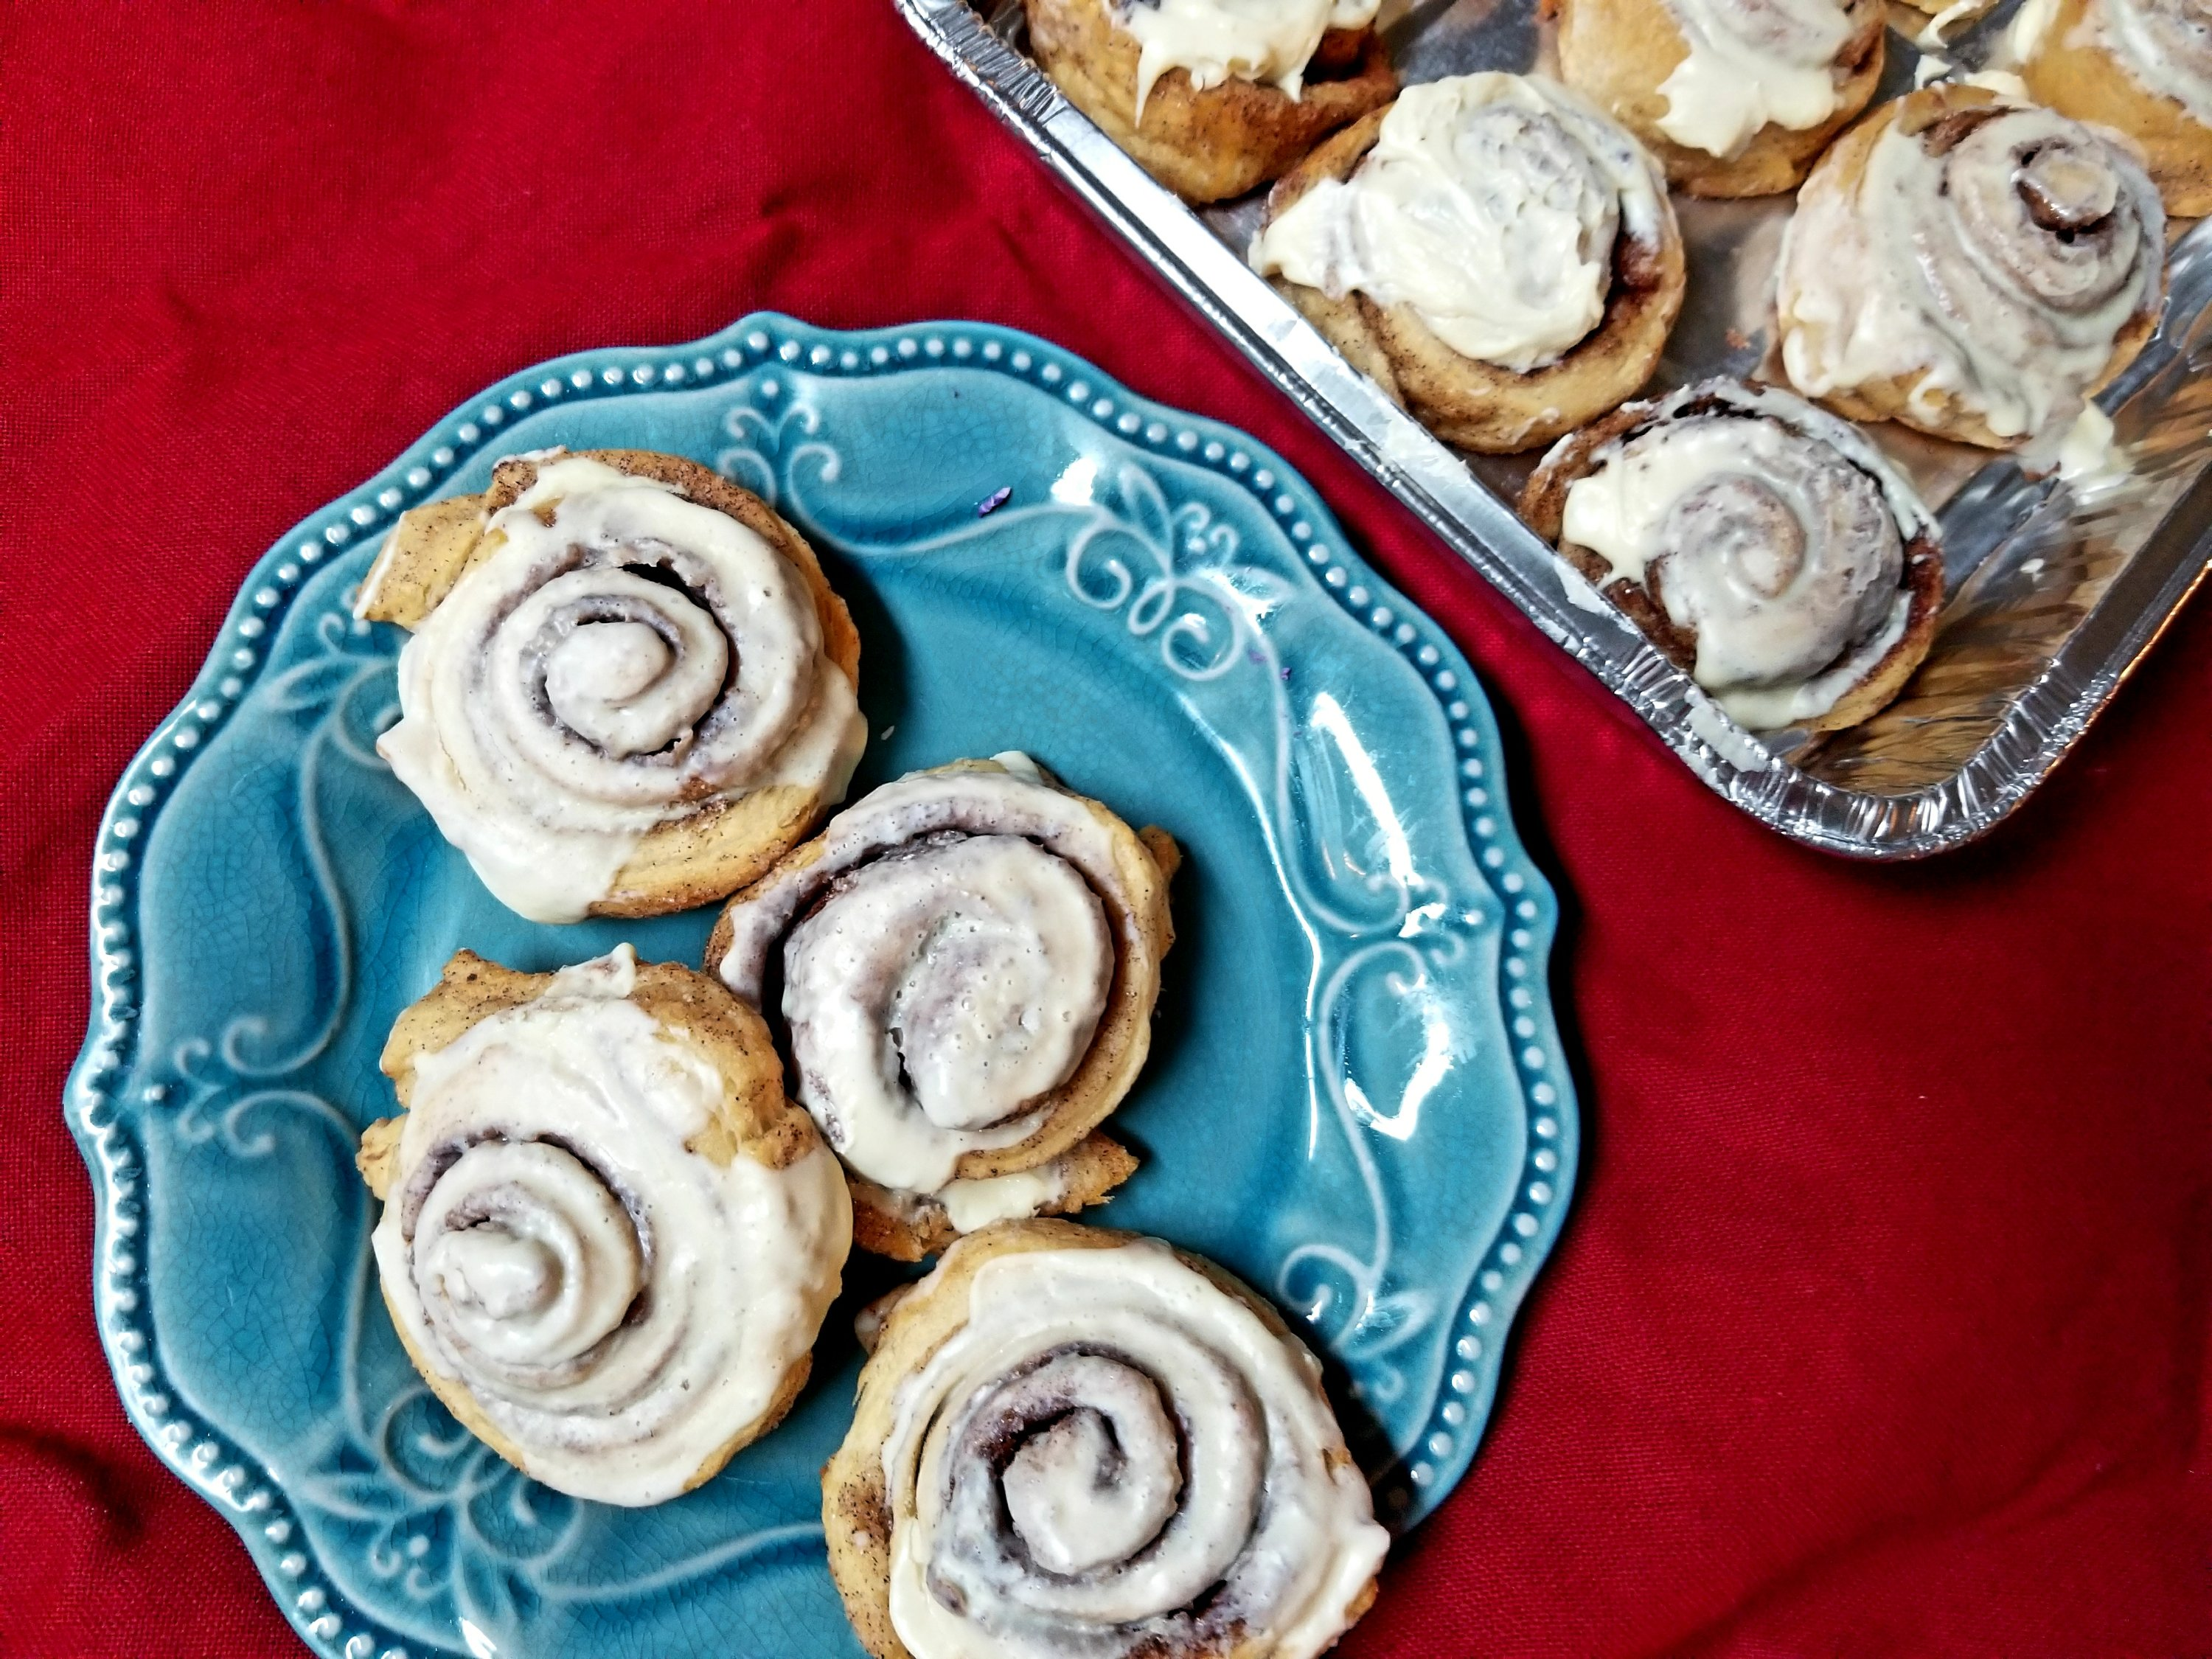 TheseSuper Easy Semi Homemade Cinnamon Rolls are amazing! It only takes minutes to make and tasks like it took hours to make. They are gooey and sweet and hit the spot!